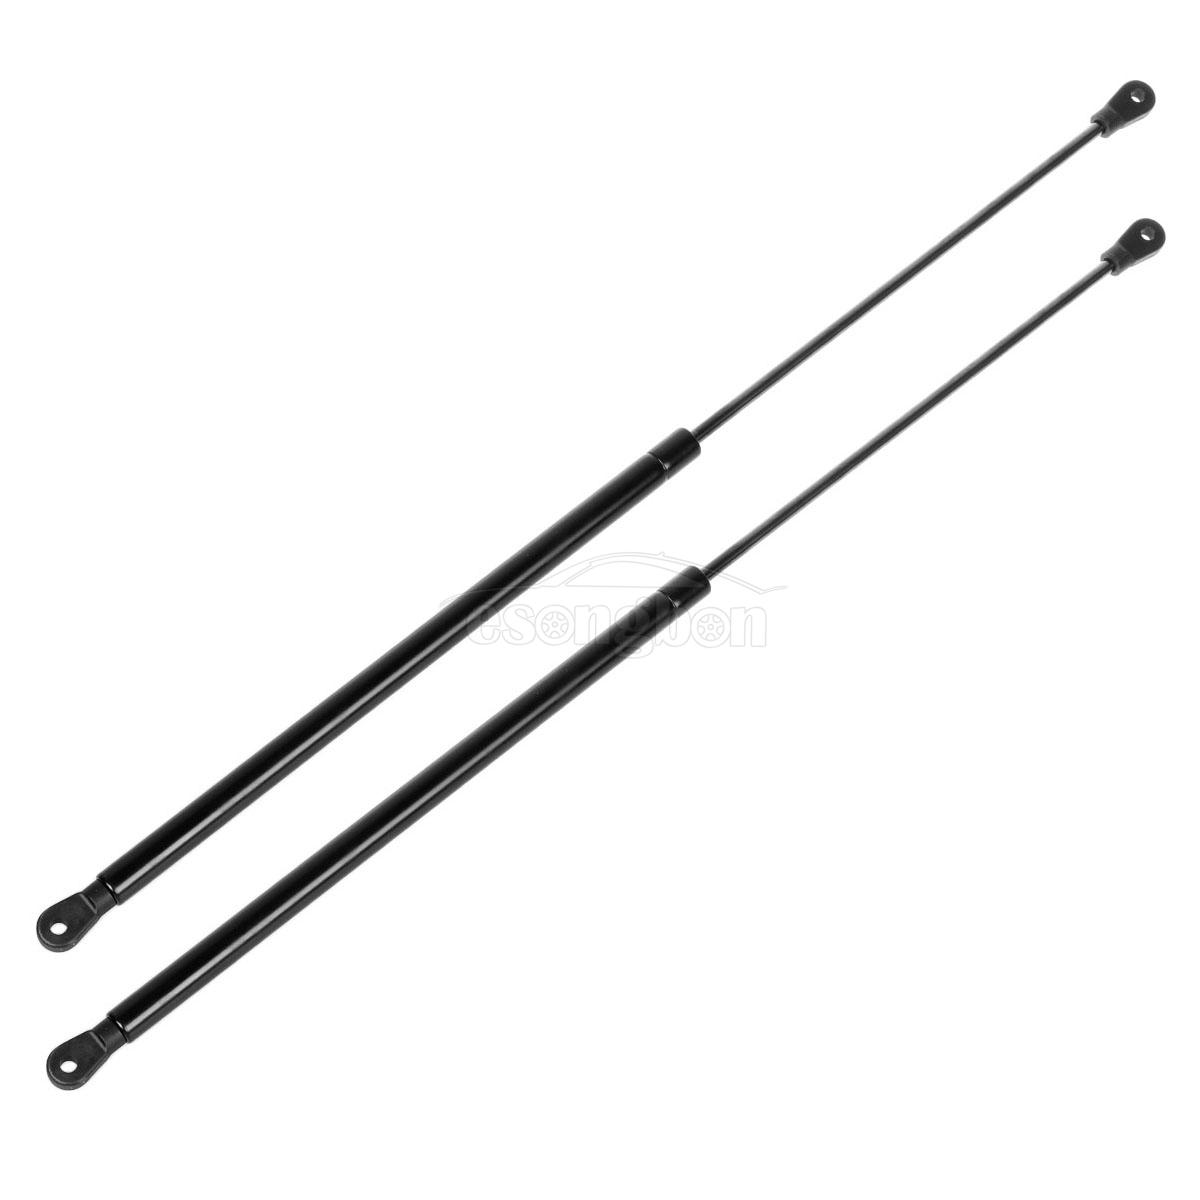 (2) 13948 Front Hood Gas Charged Lift Support Struts Rods